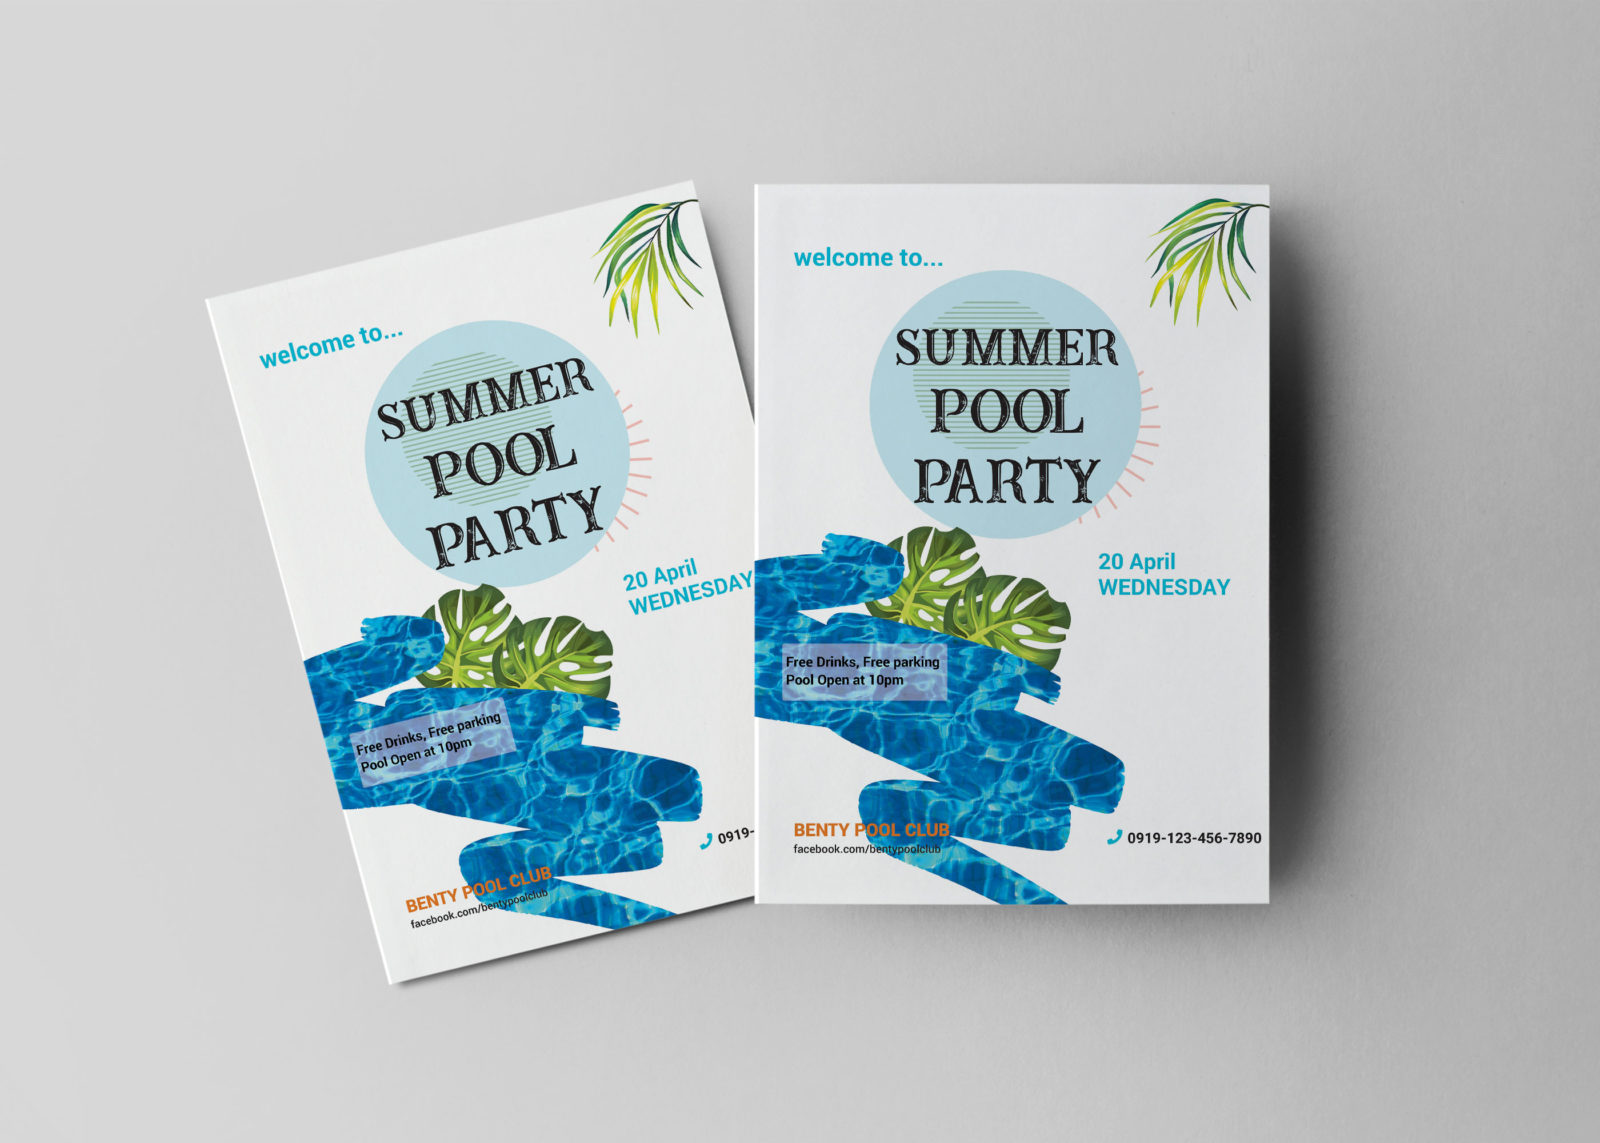 Summer Pool Party Flyer Design Template